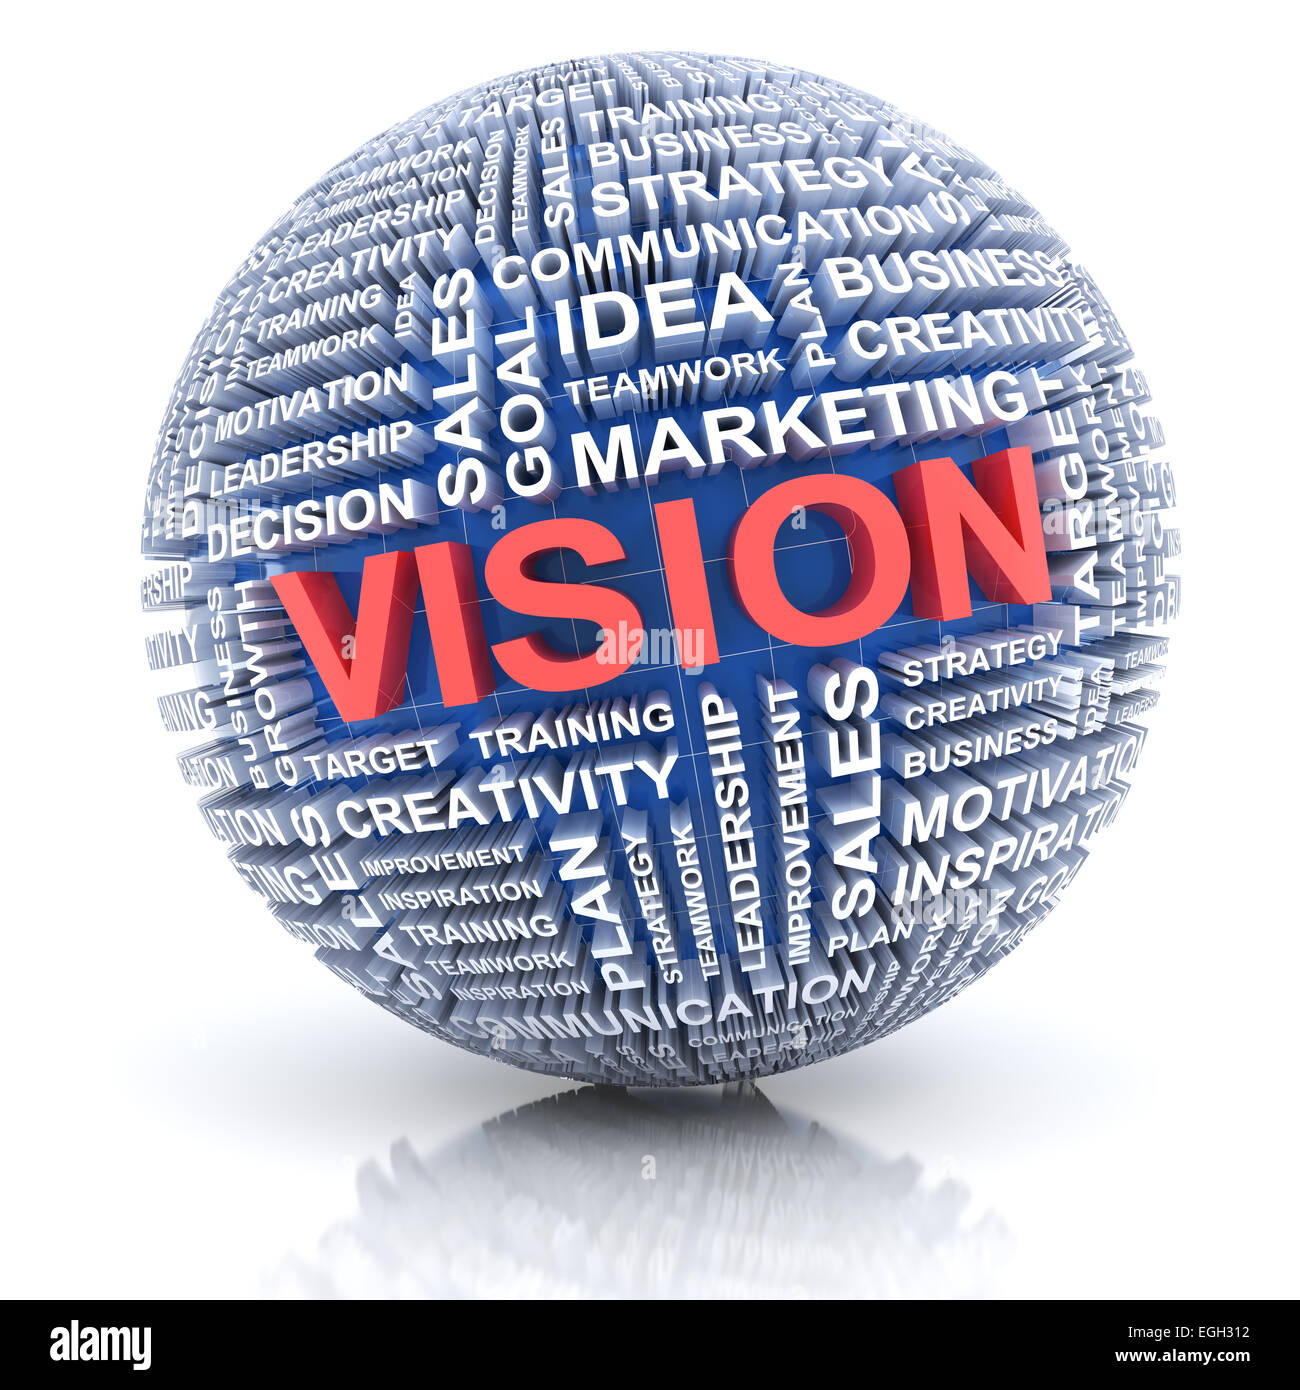 Business vision concept, 3d render - Stock Image